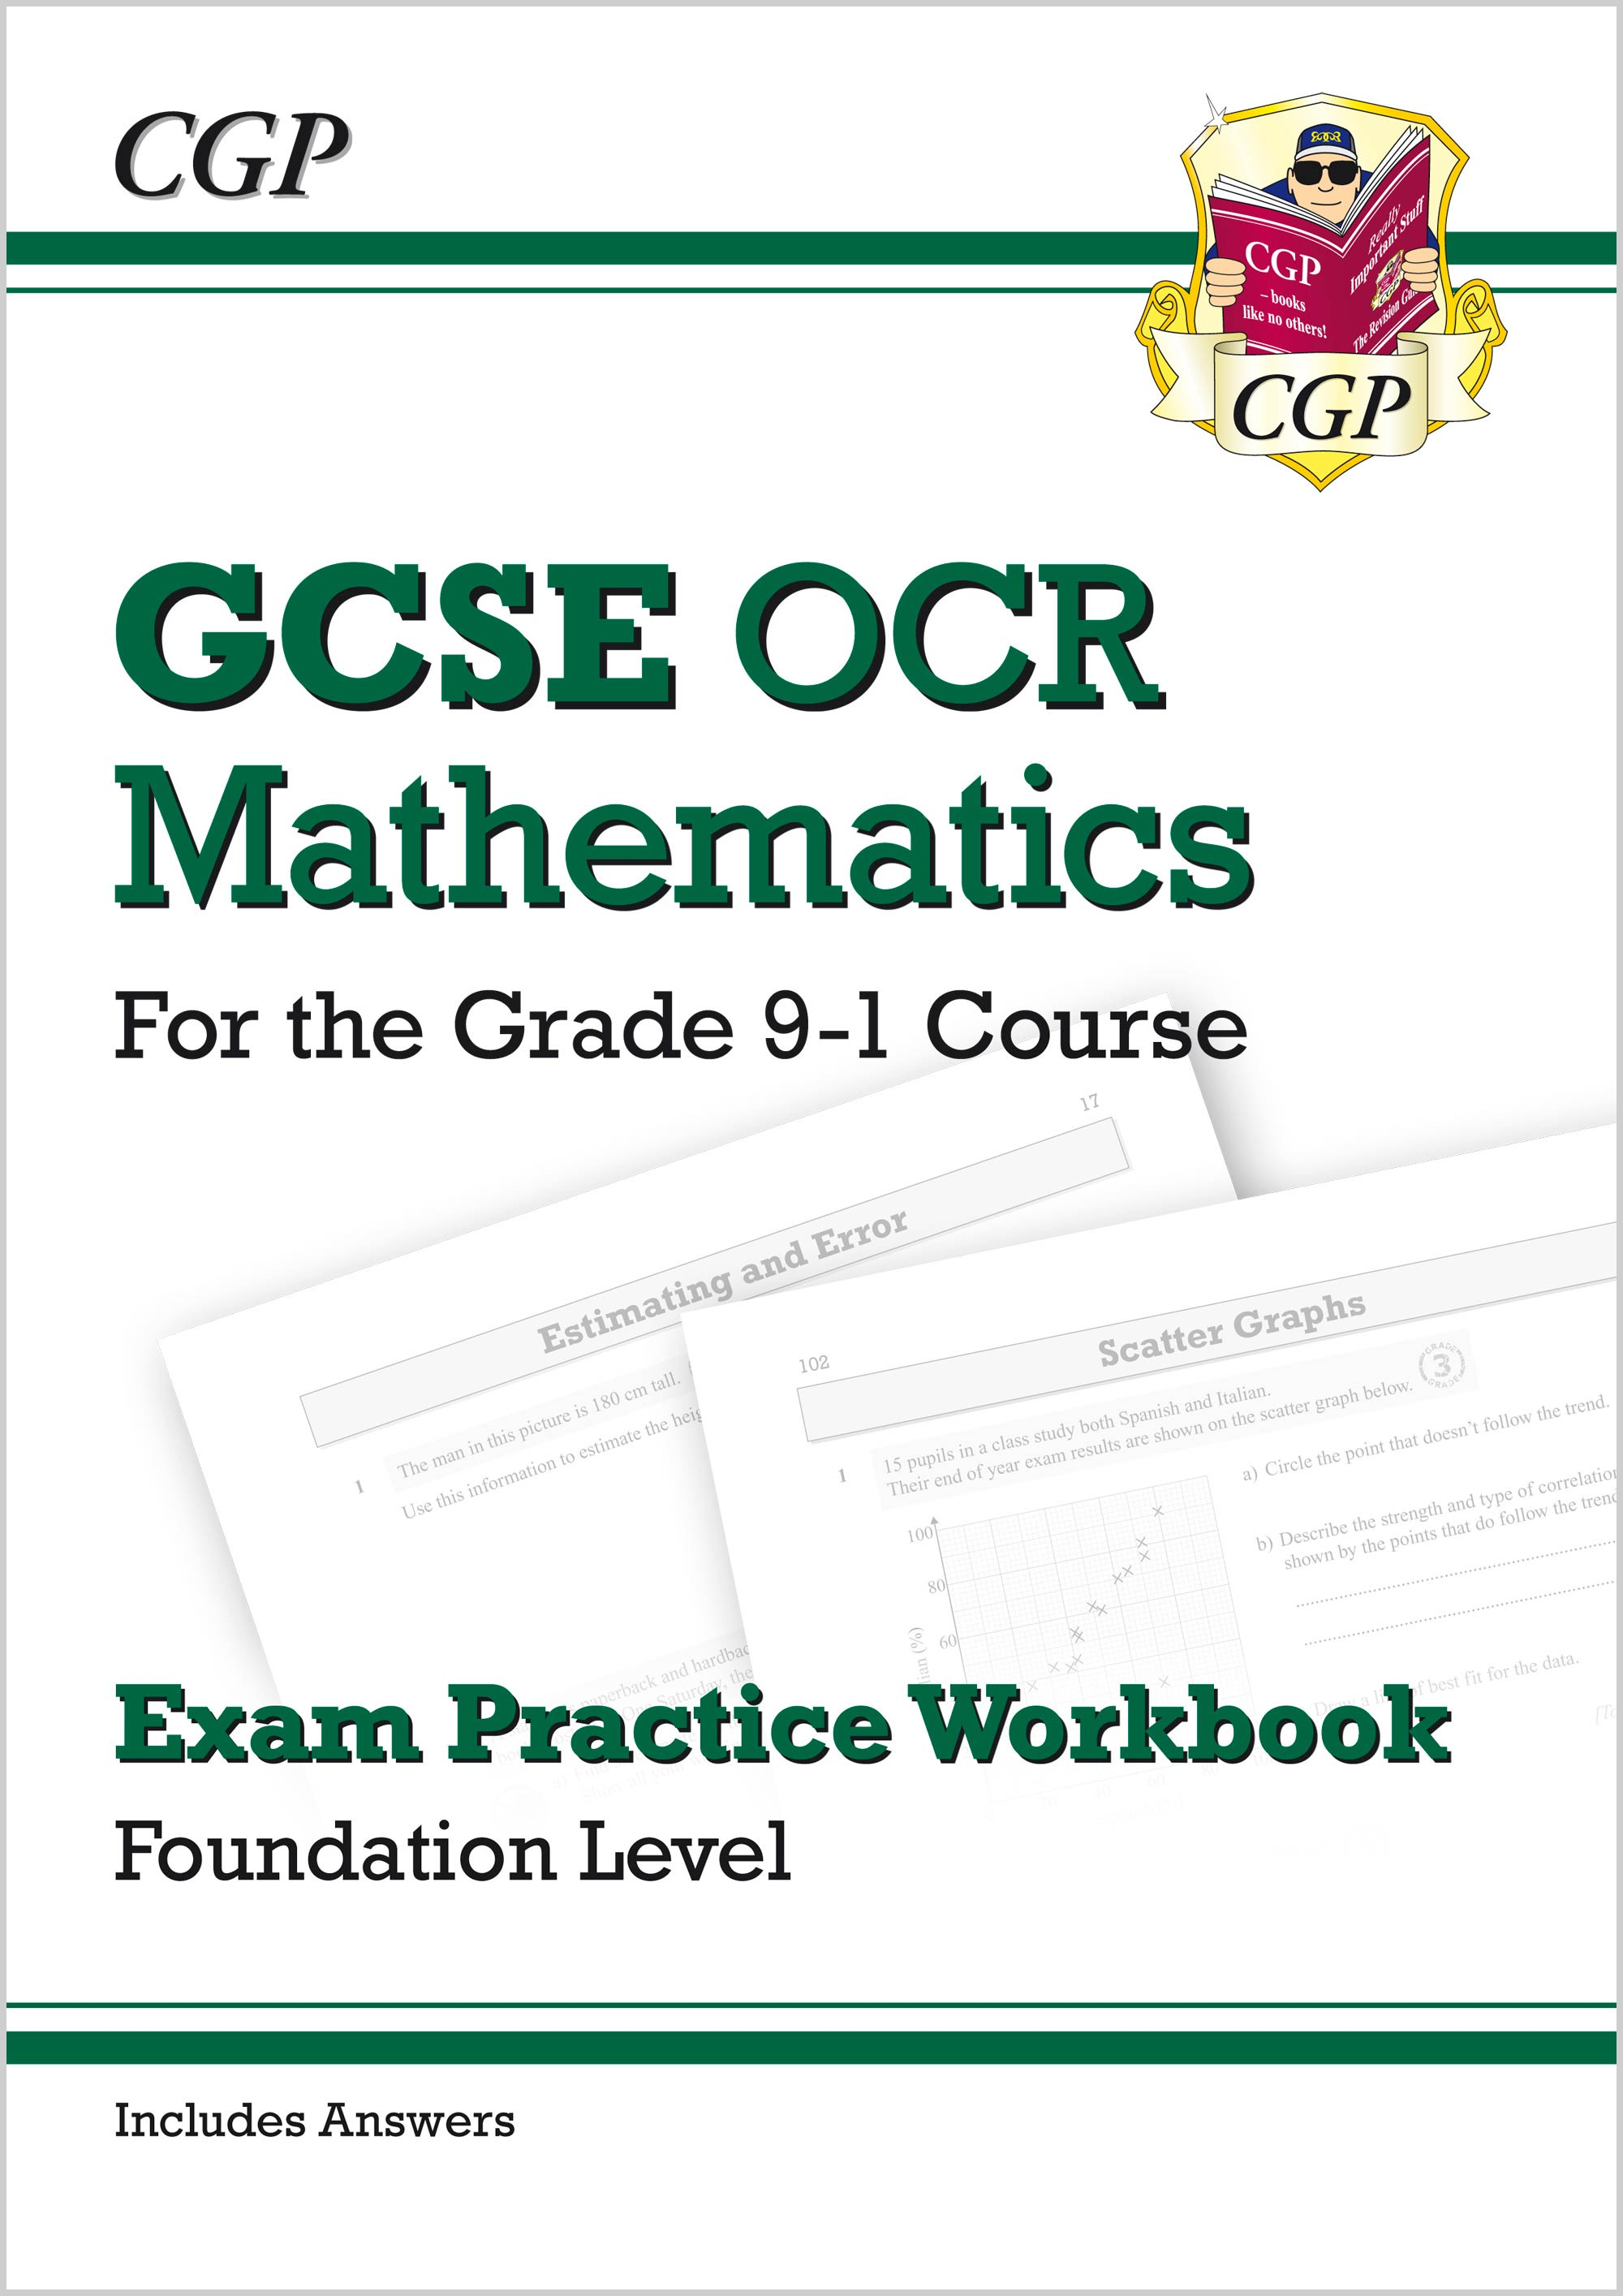 MCFQ42 - GCSE Maths OCR Exam Practice Workbook: Foundation - for the Grade 9-1 Course (includes Answ